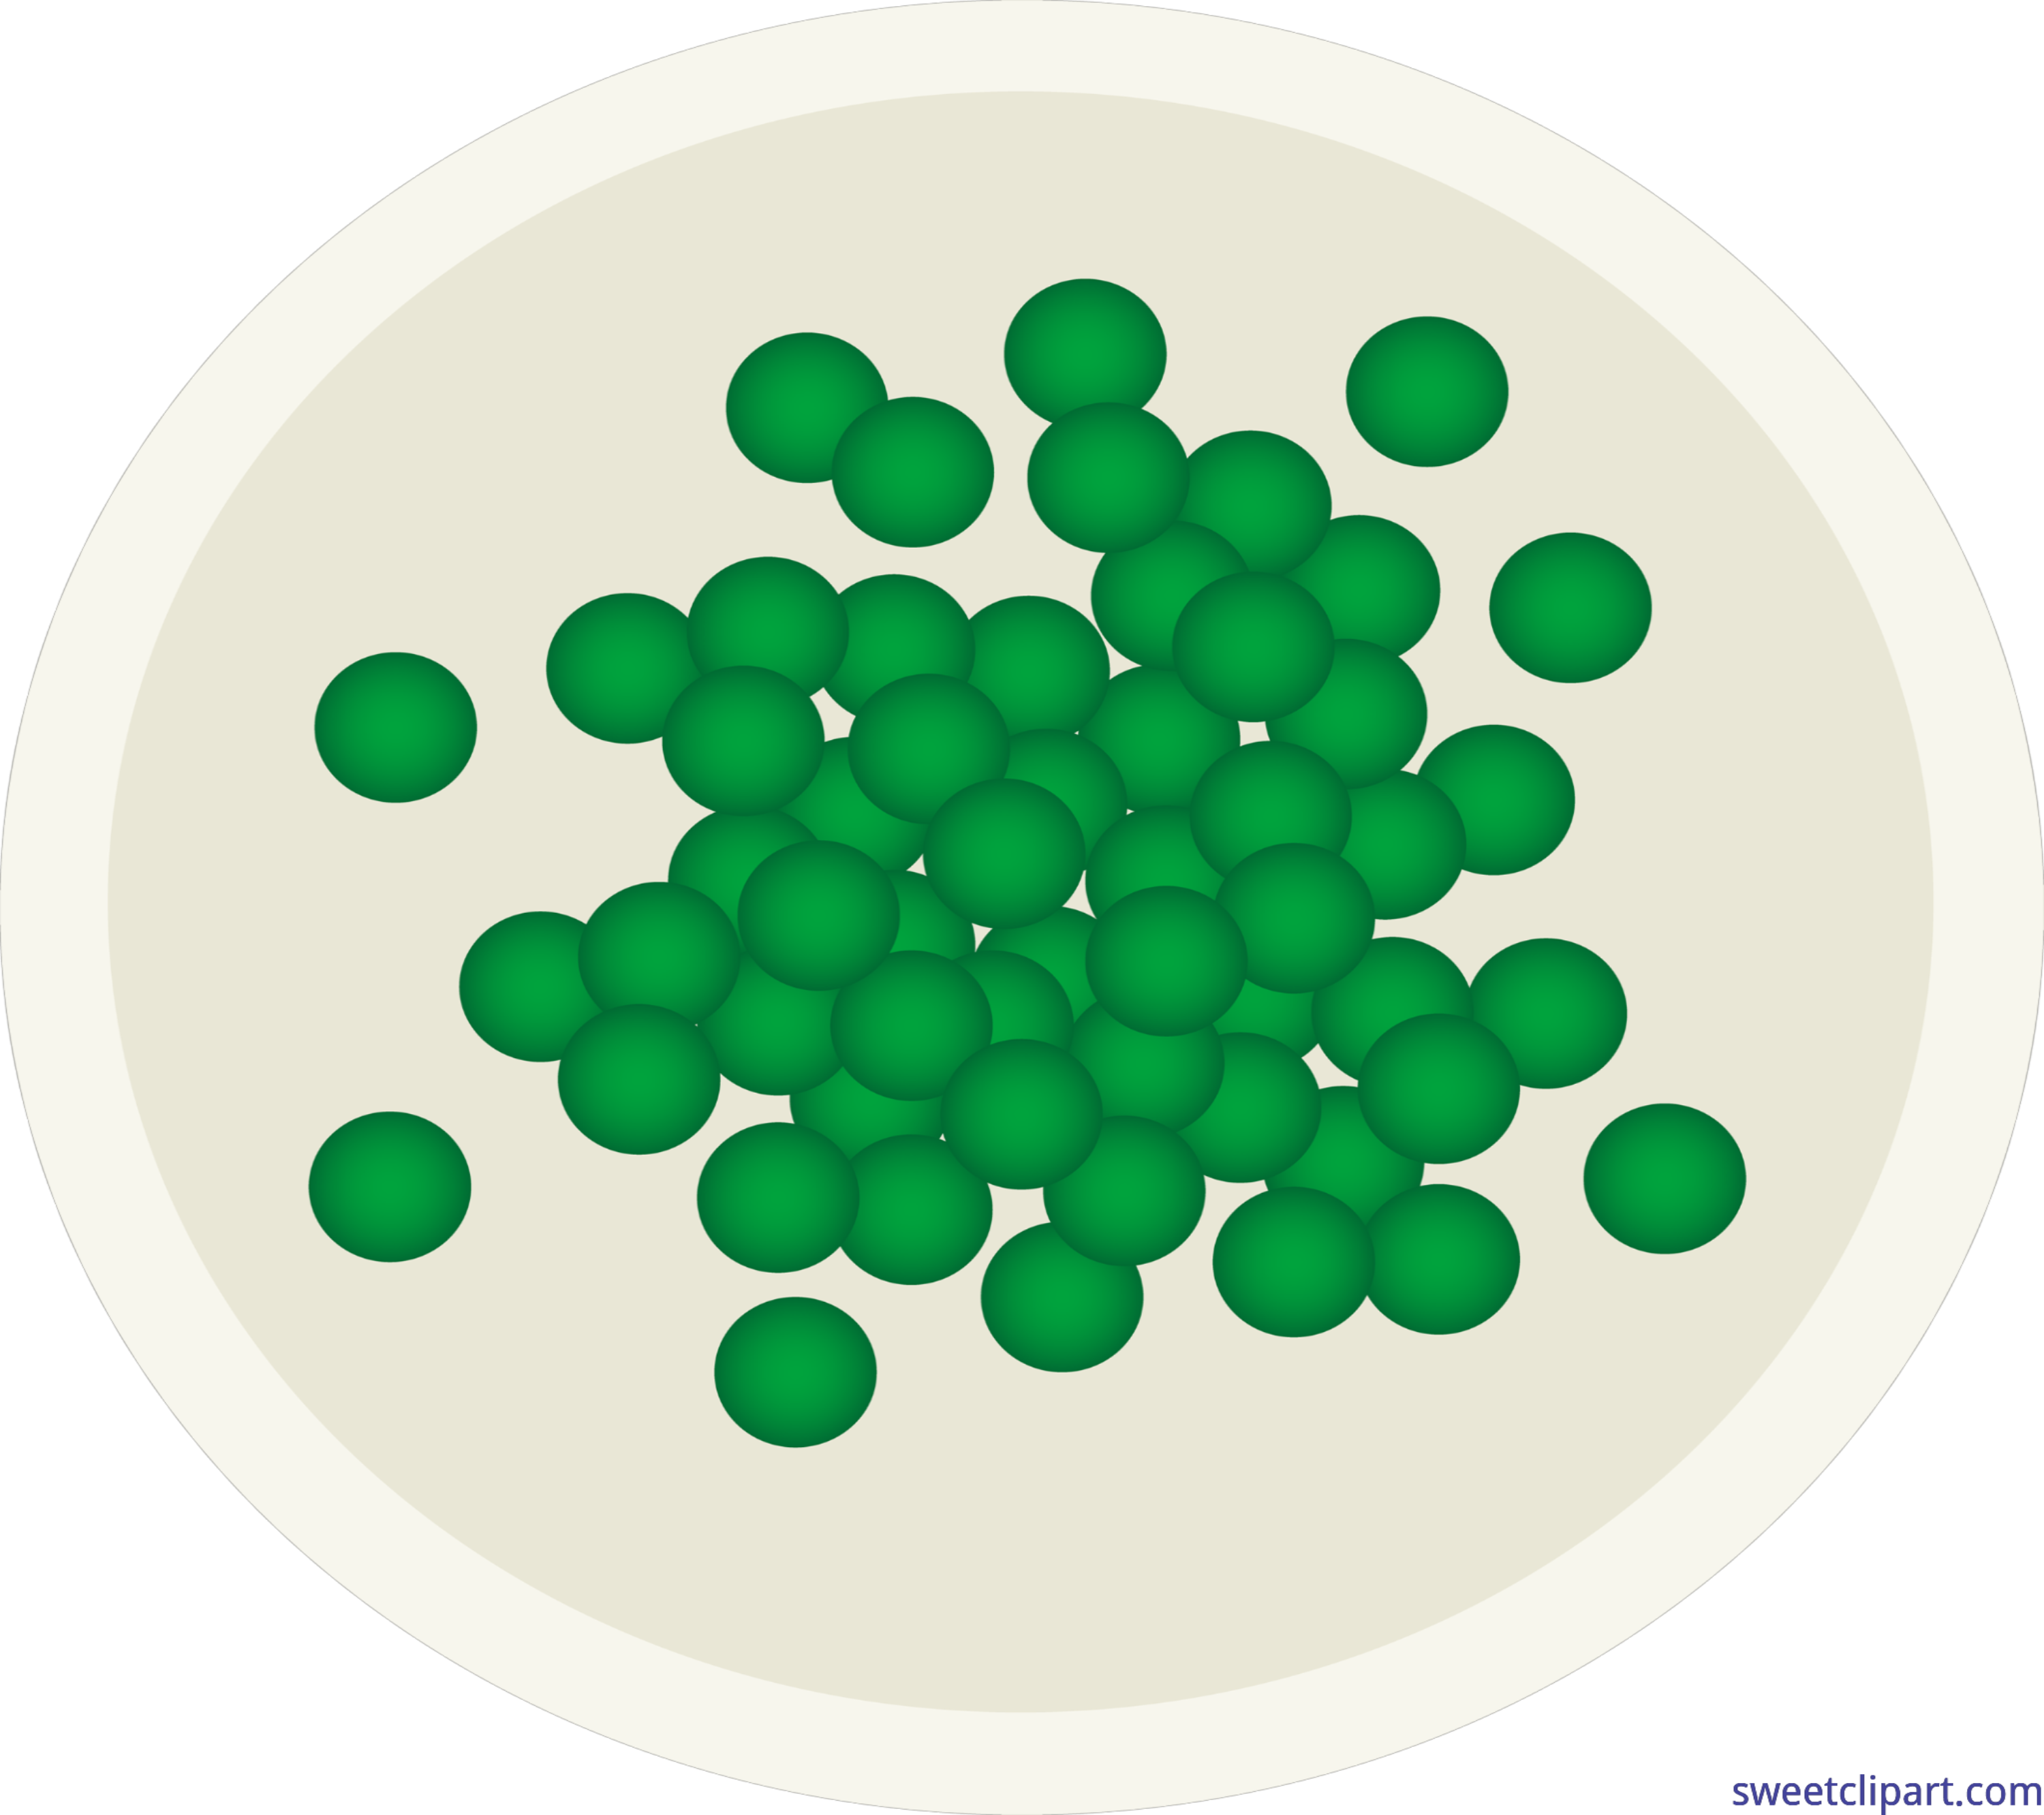 Mailbox clipart green. Peas on plate clip